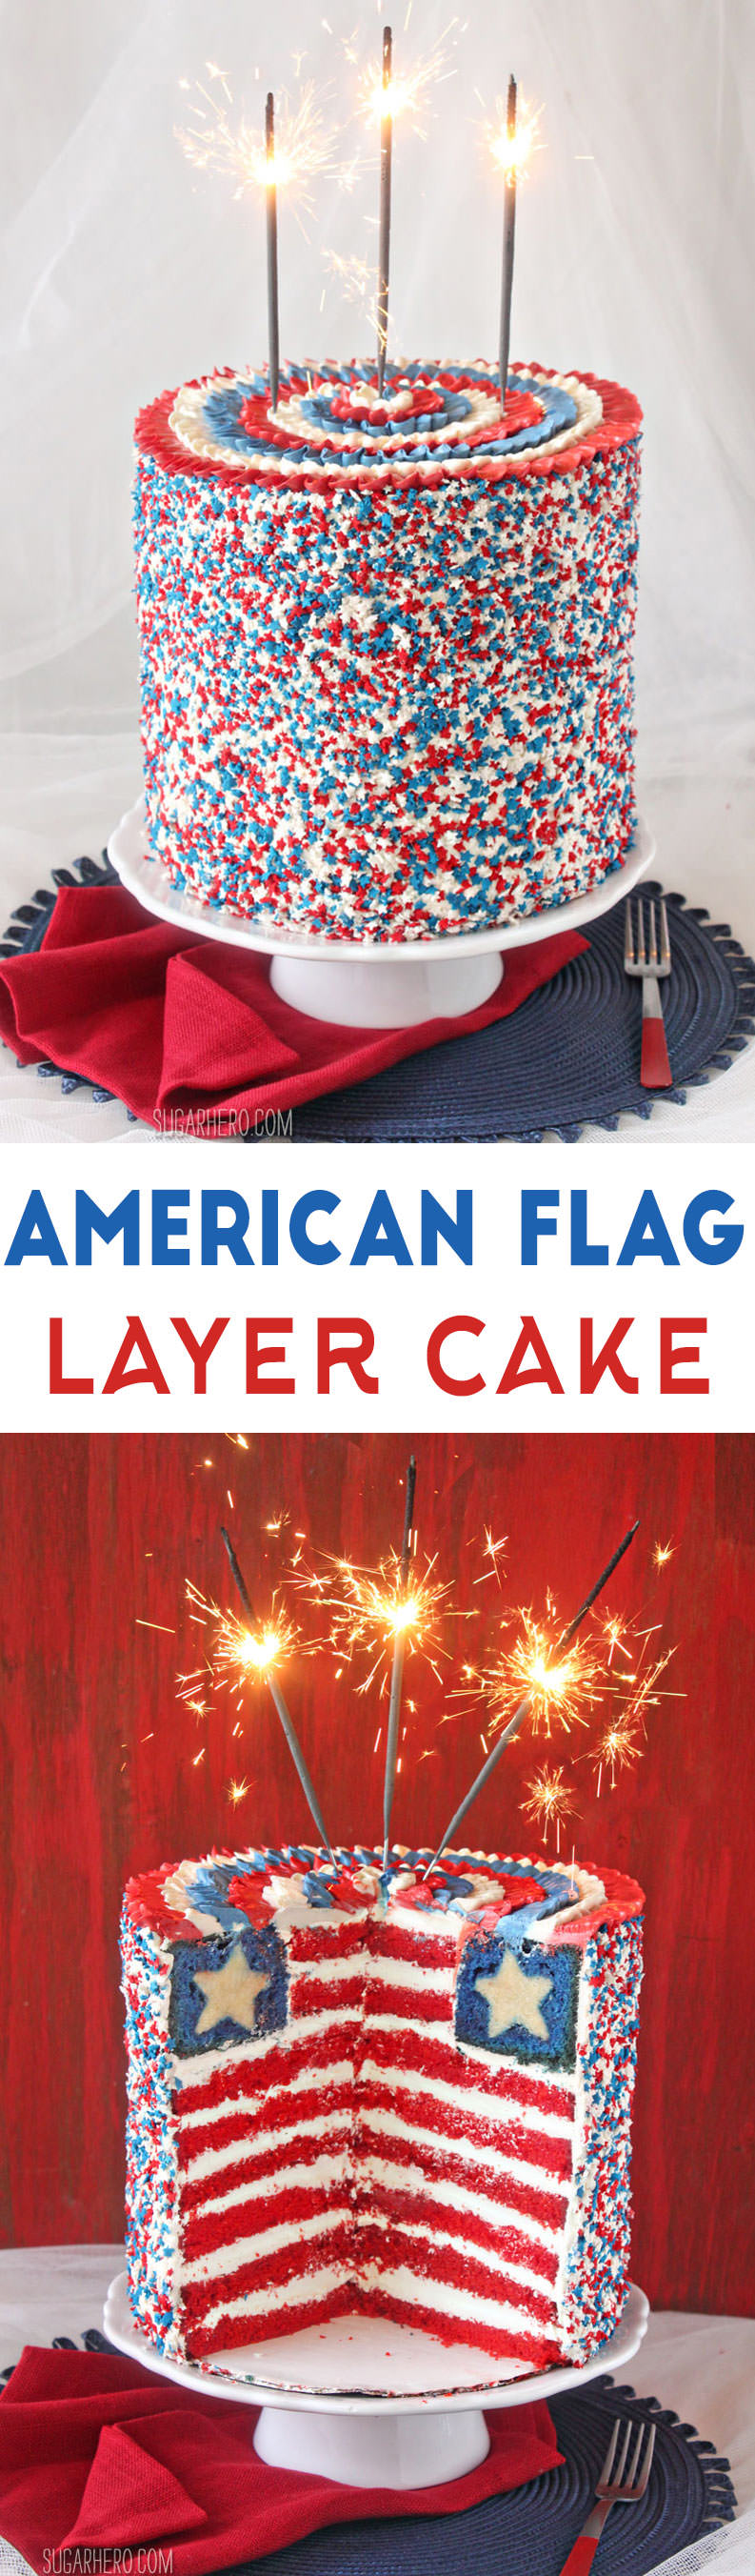 American Flag Layer Cake | From SugarHero.com